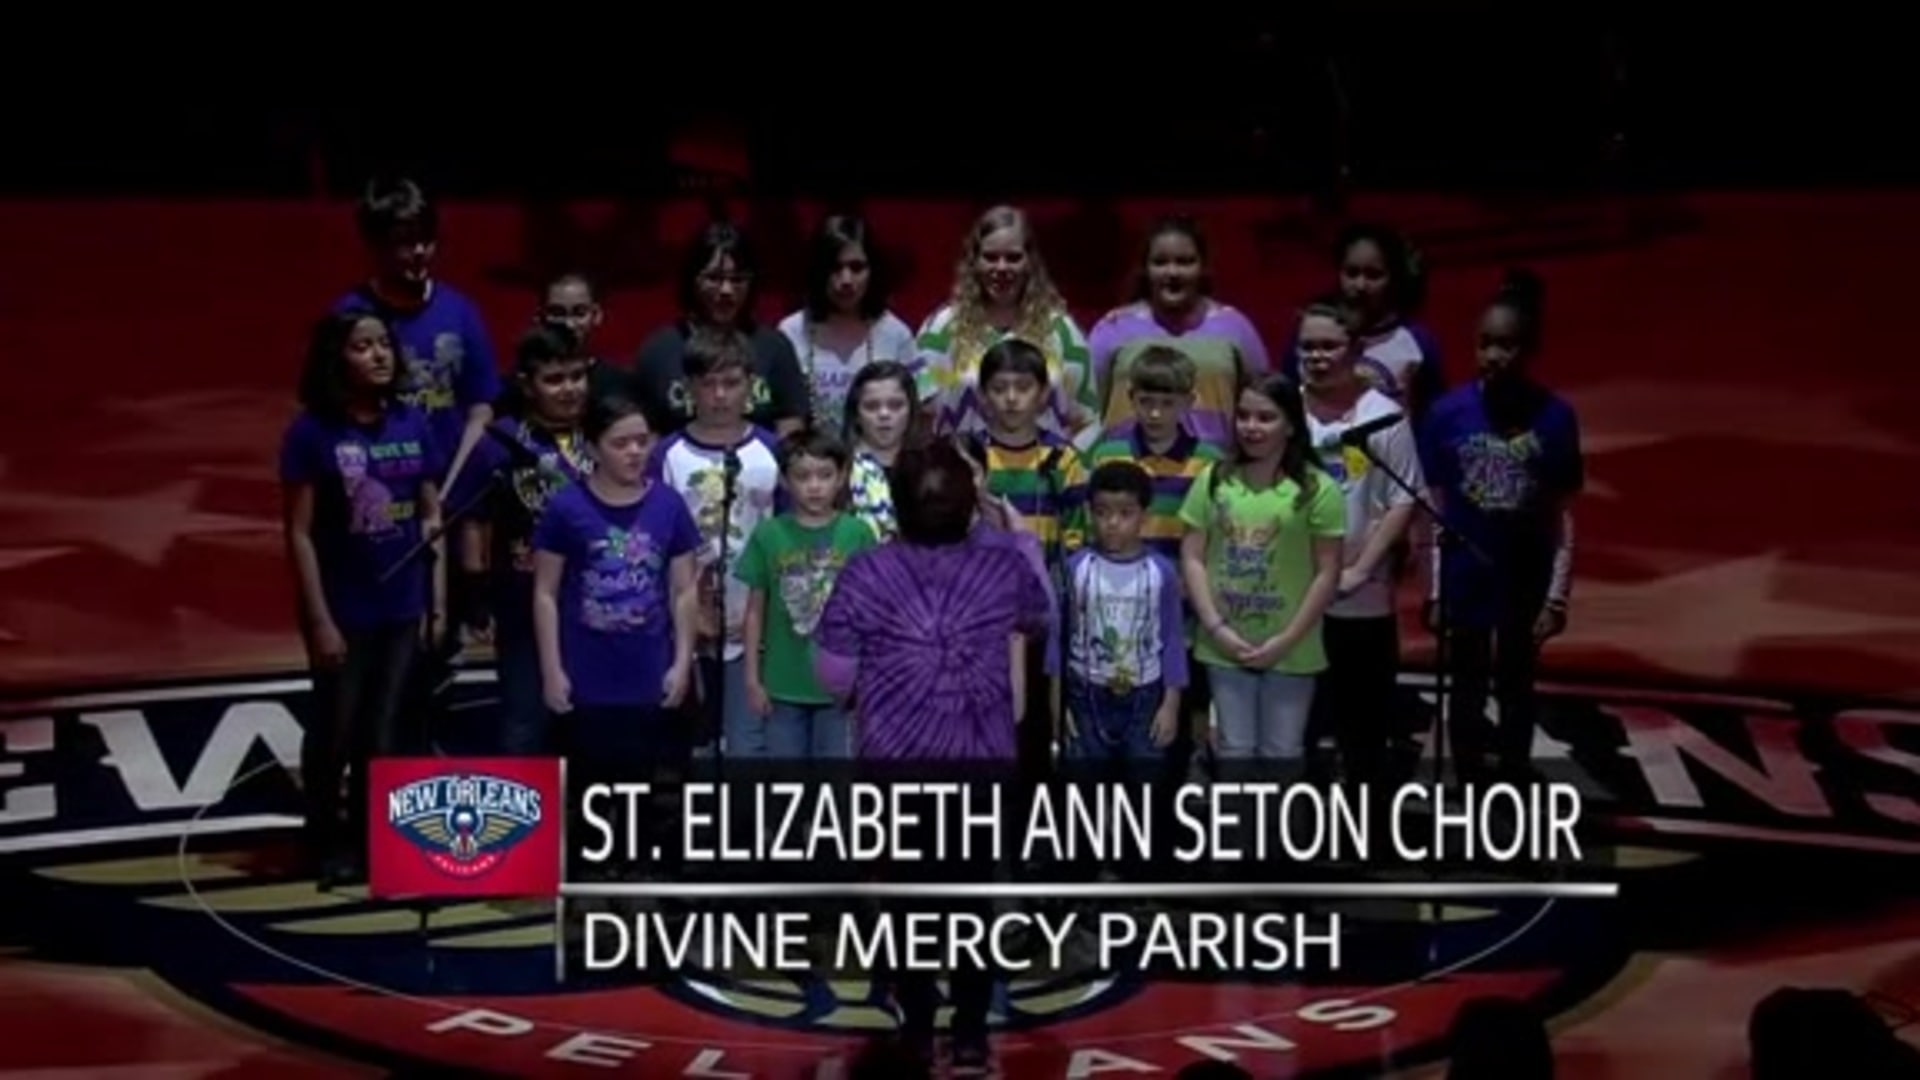 Entertainment: National Anthem performance by St. Elizabeth Ann Seton Choir – February 13 vs. Oklahoma City Thunder